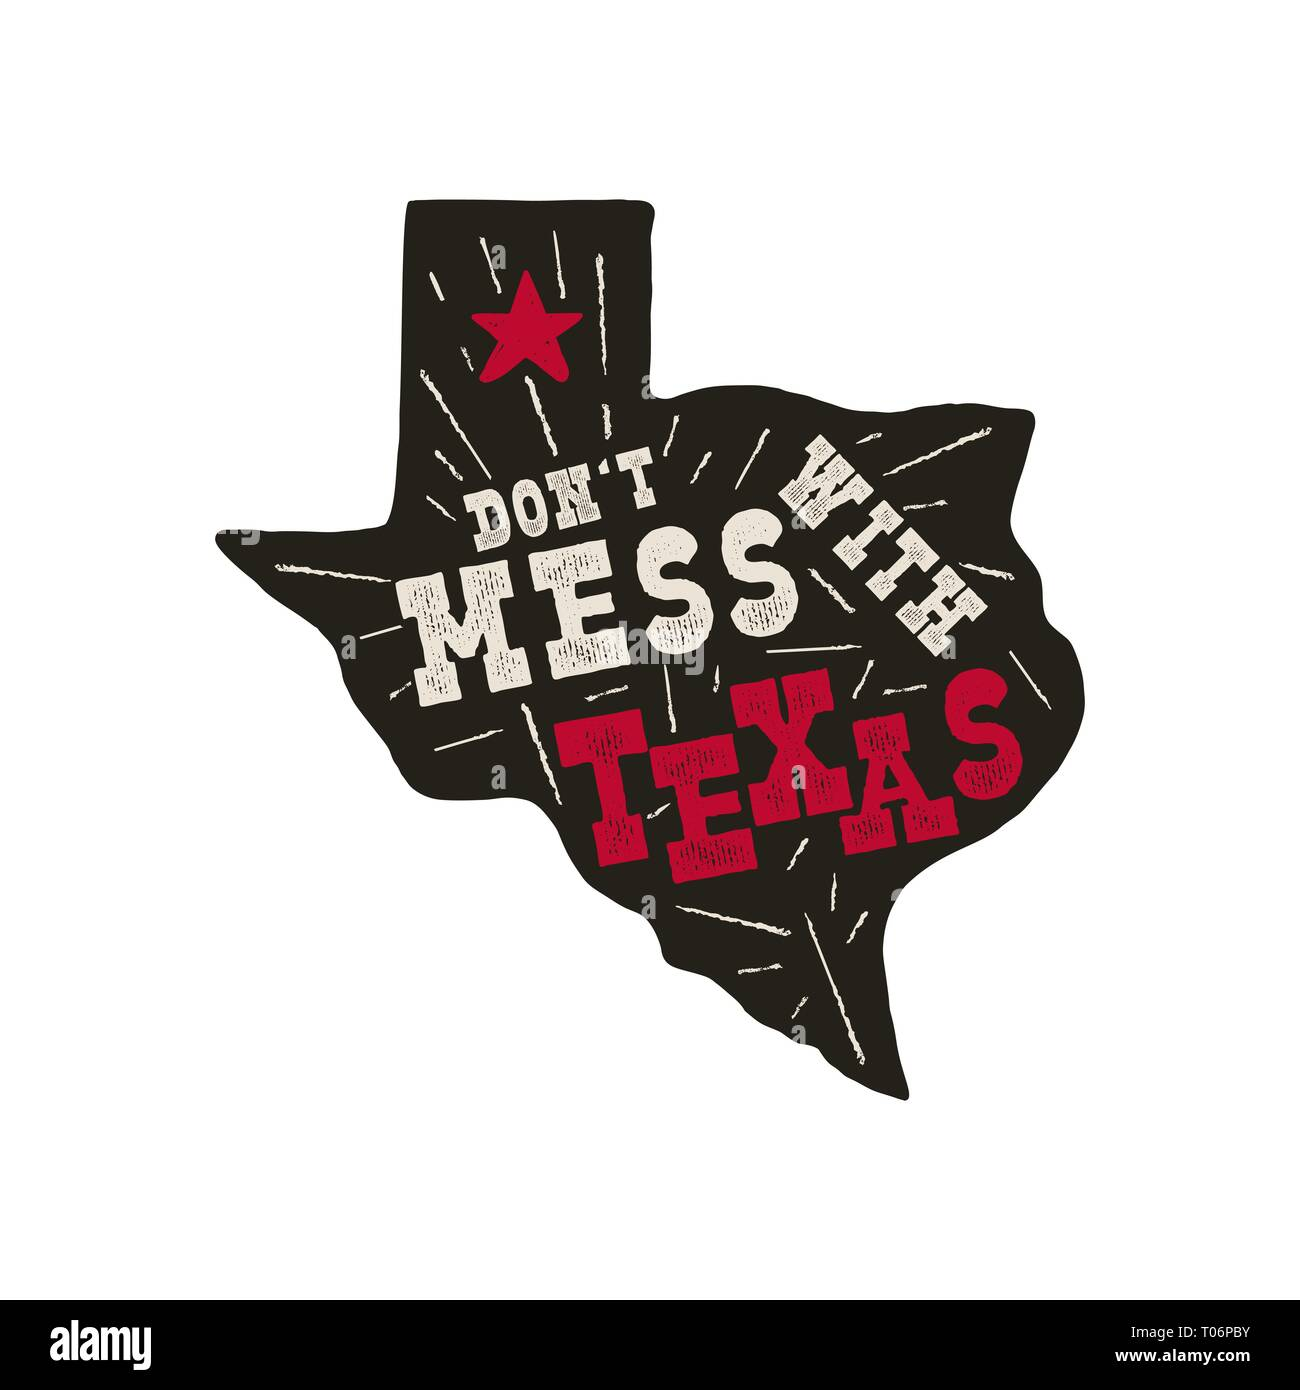 Texas state badge - Don't mess with Texas quote inside. Vintage hand drawn typography illustration. Silhouette retro style monochrome design. Nice for - Stock Image